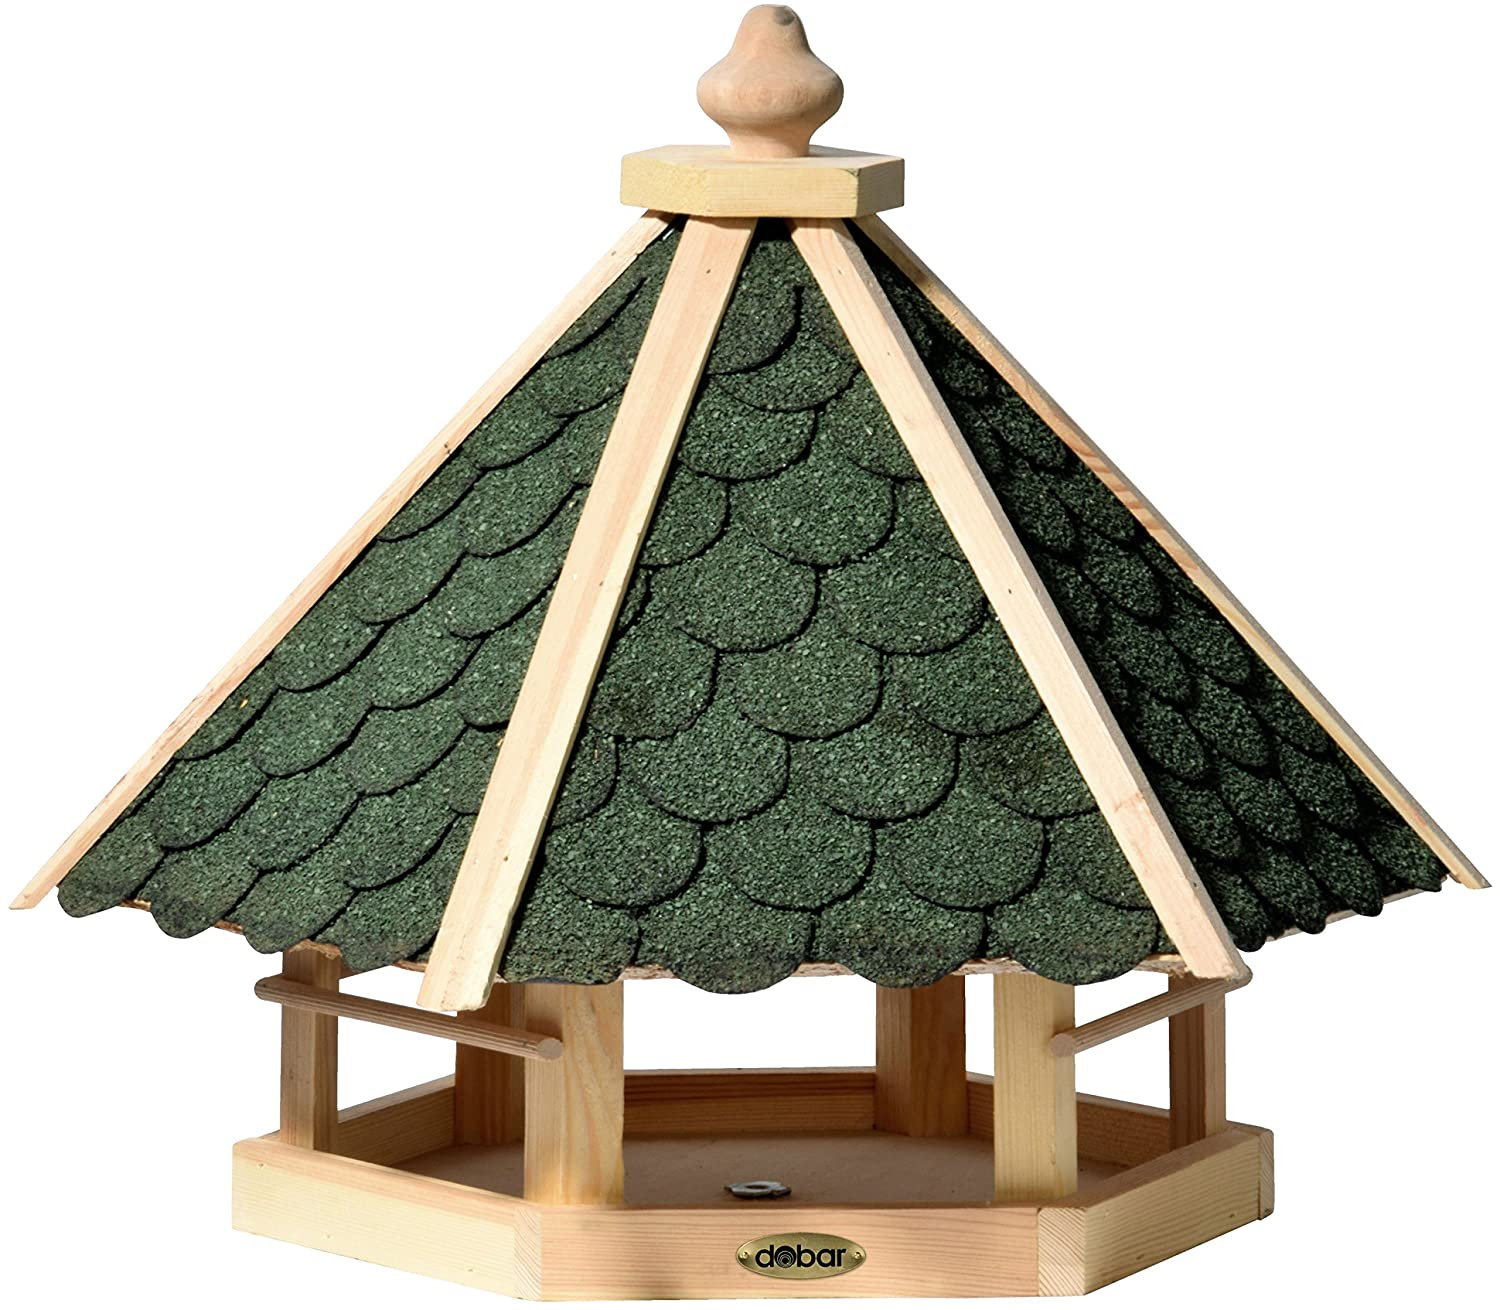 Dobar Bird House Made of Wood (Pine) with Green Bitumen Roof Shingles For Desk or Wall Mounted Square Hexagonal